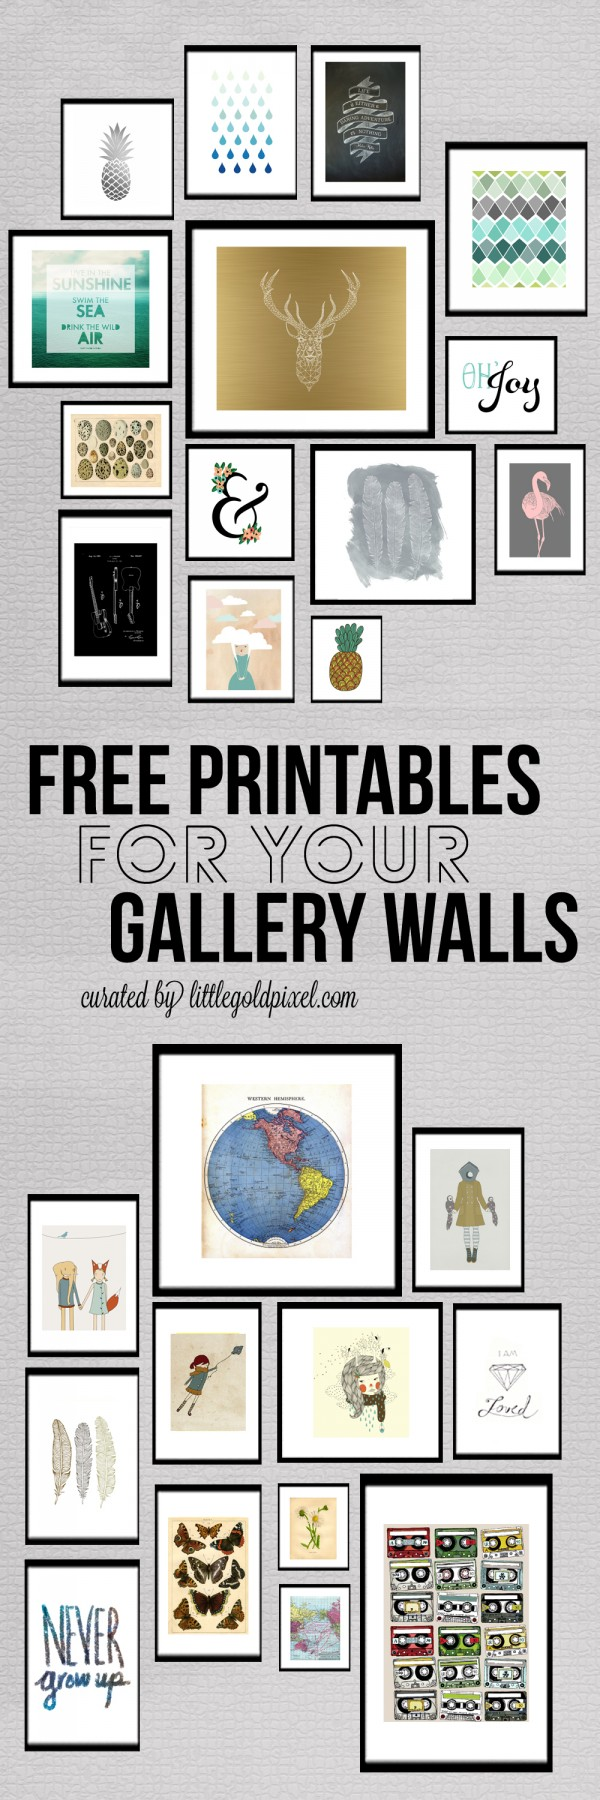 7 Images of Silver Gallery Wall Free Printables